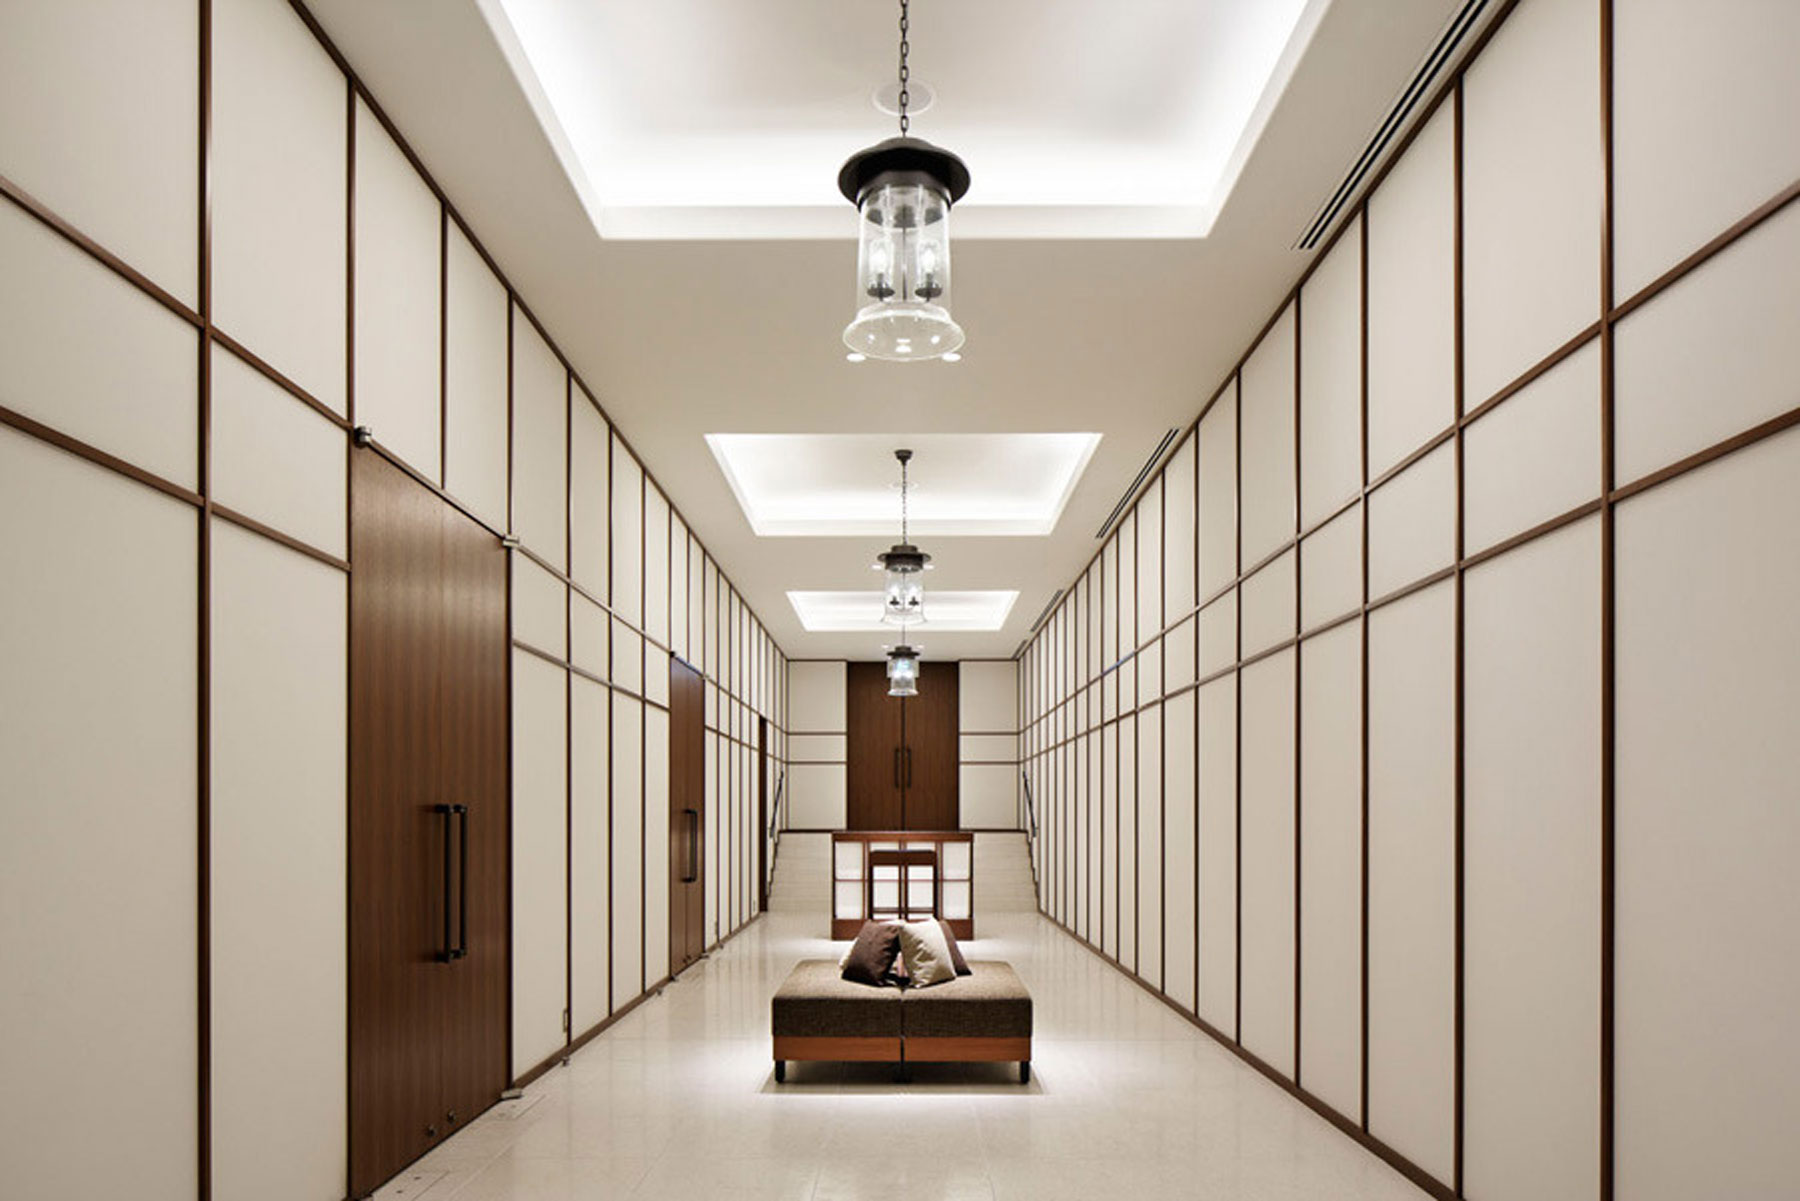 The best japanese interior designers you need to know about - What to know about interior design ...